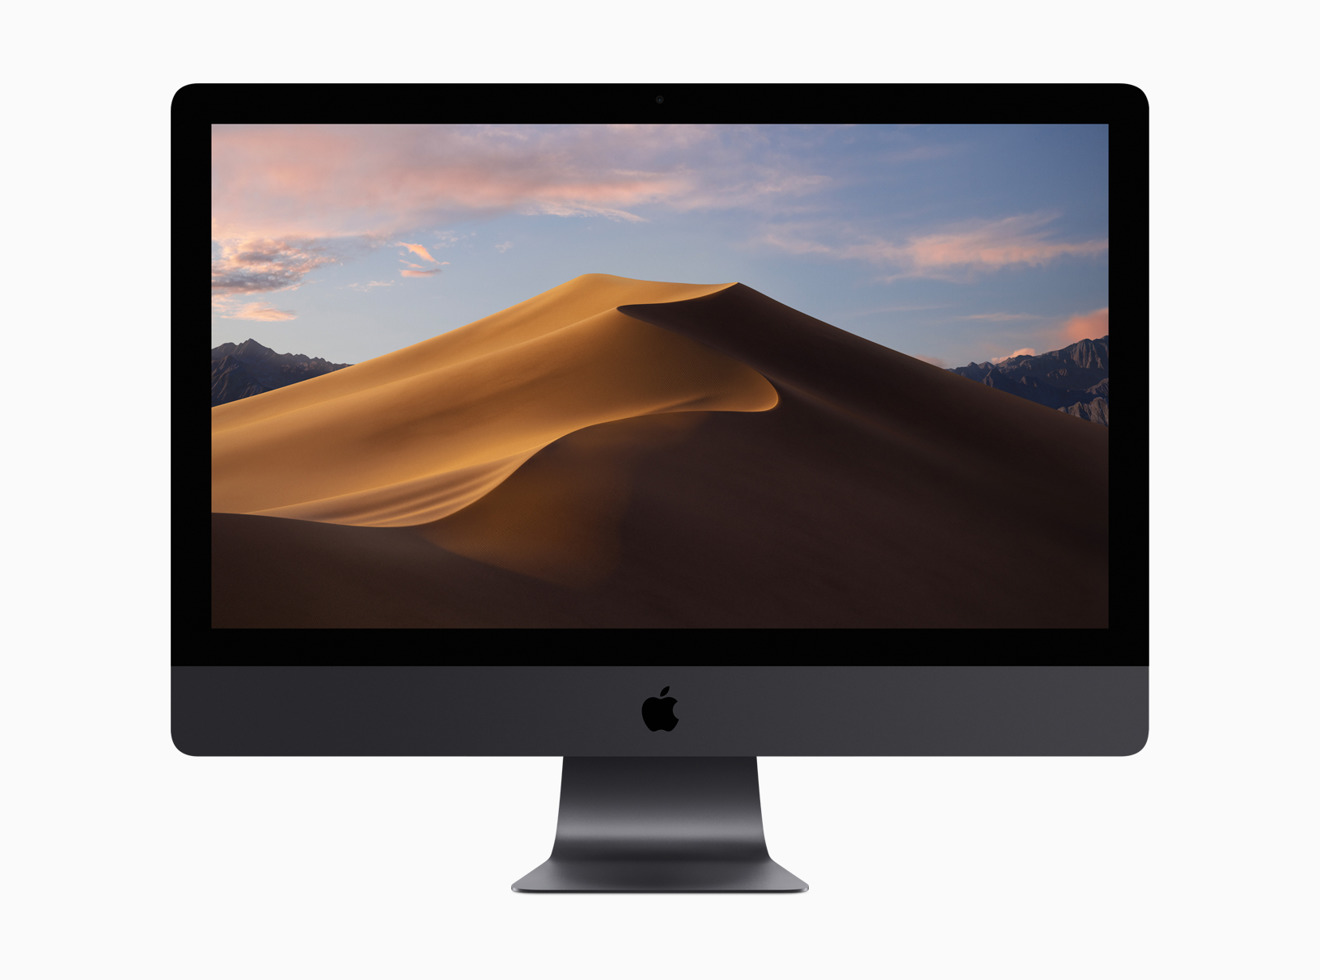 Don't run the iOS 12, macOS 10 14 Mojave betas if you value your data